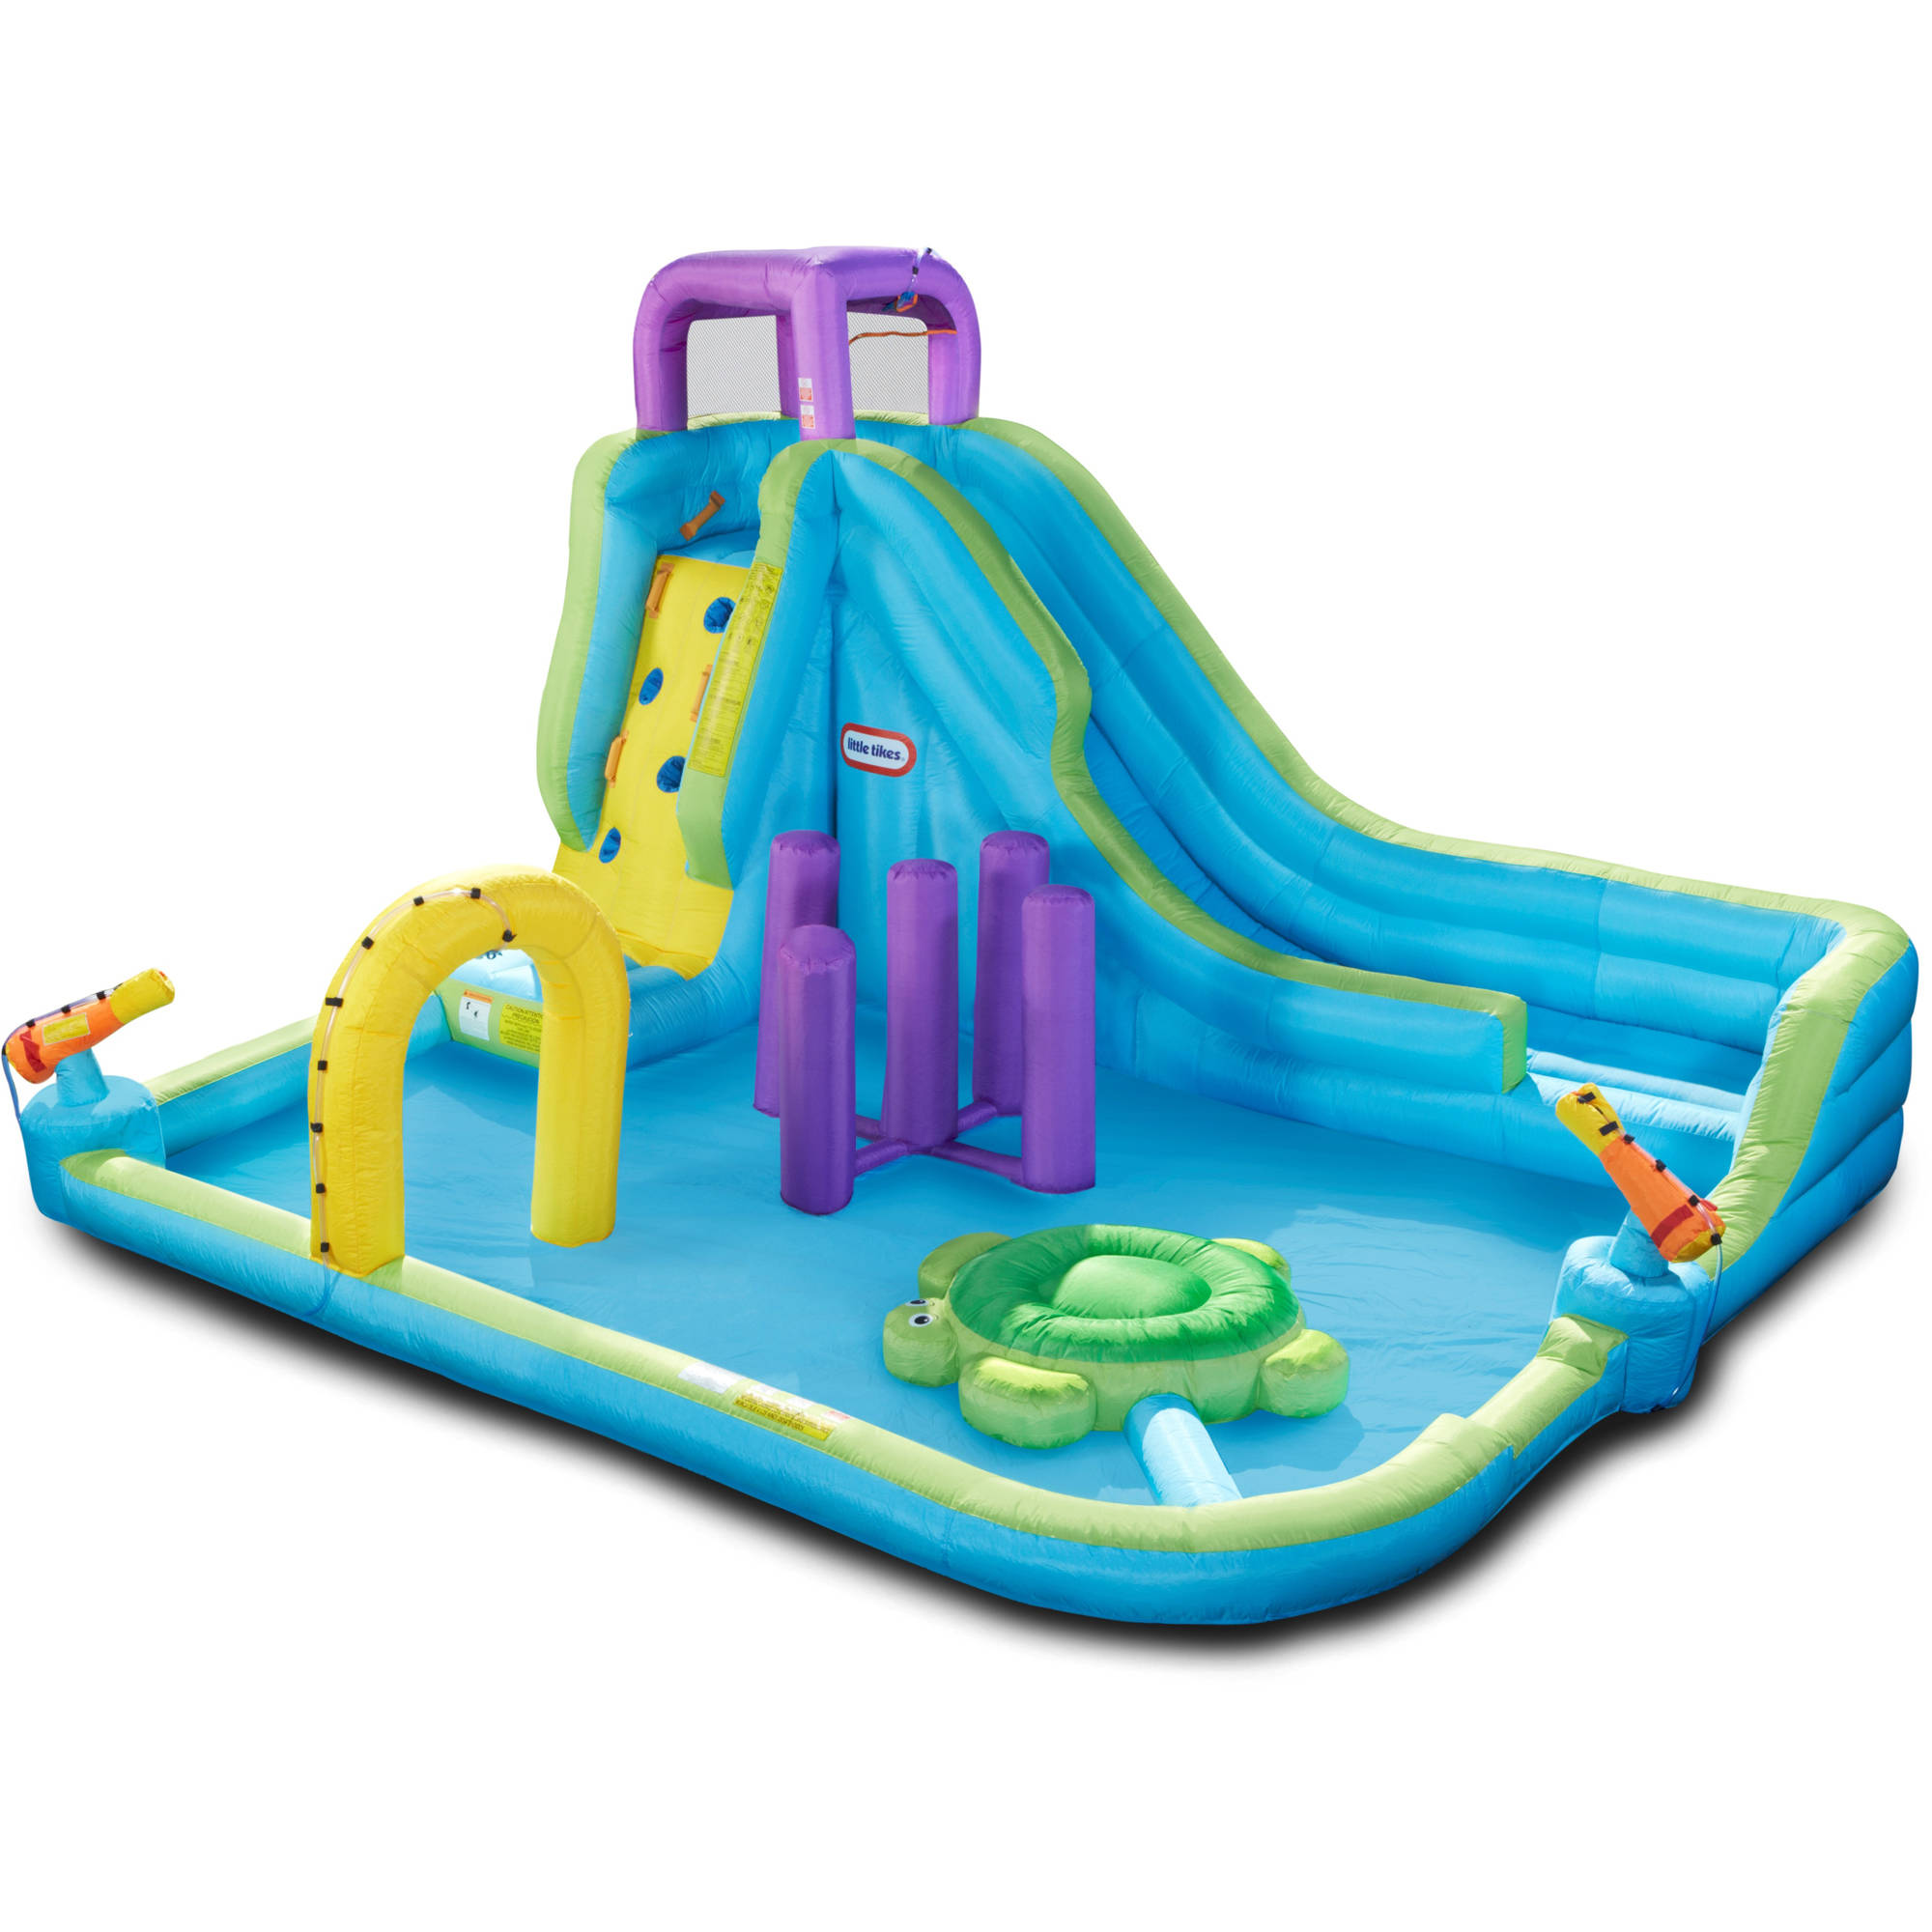 Little Tikes Obstacle Course Waterslide